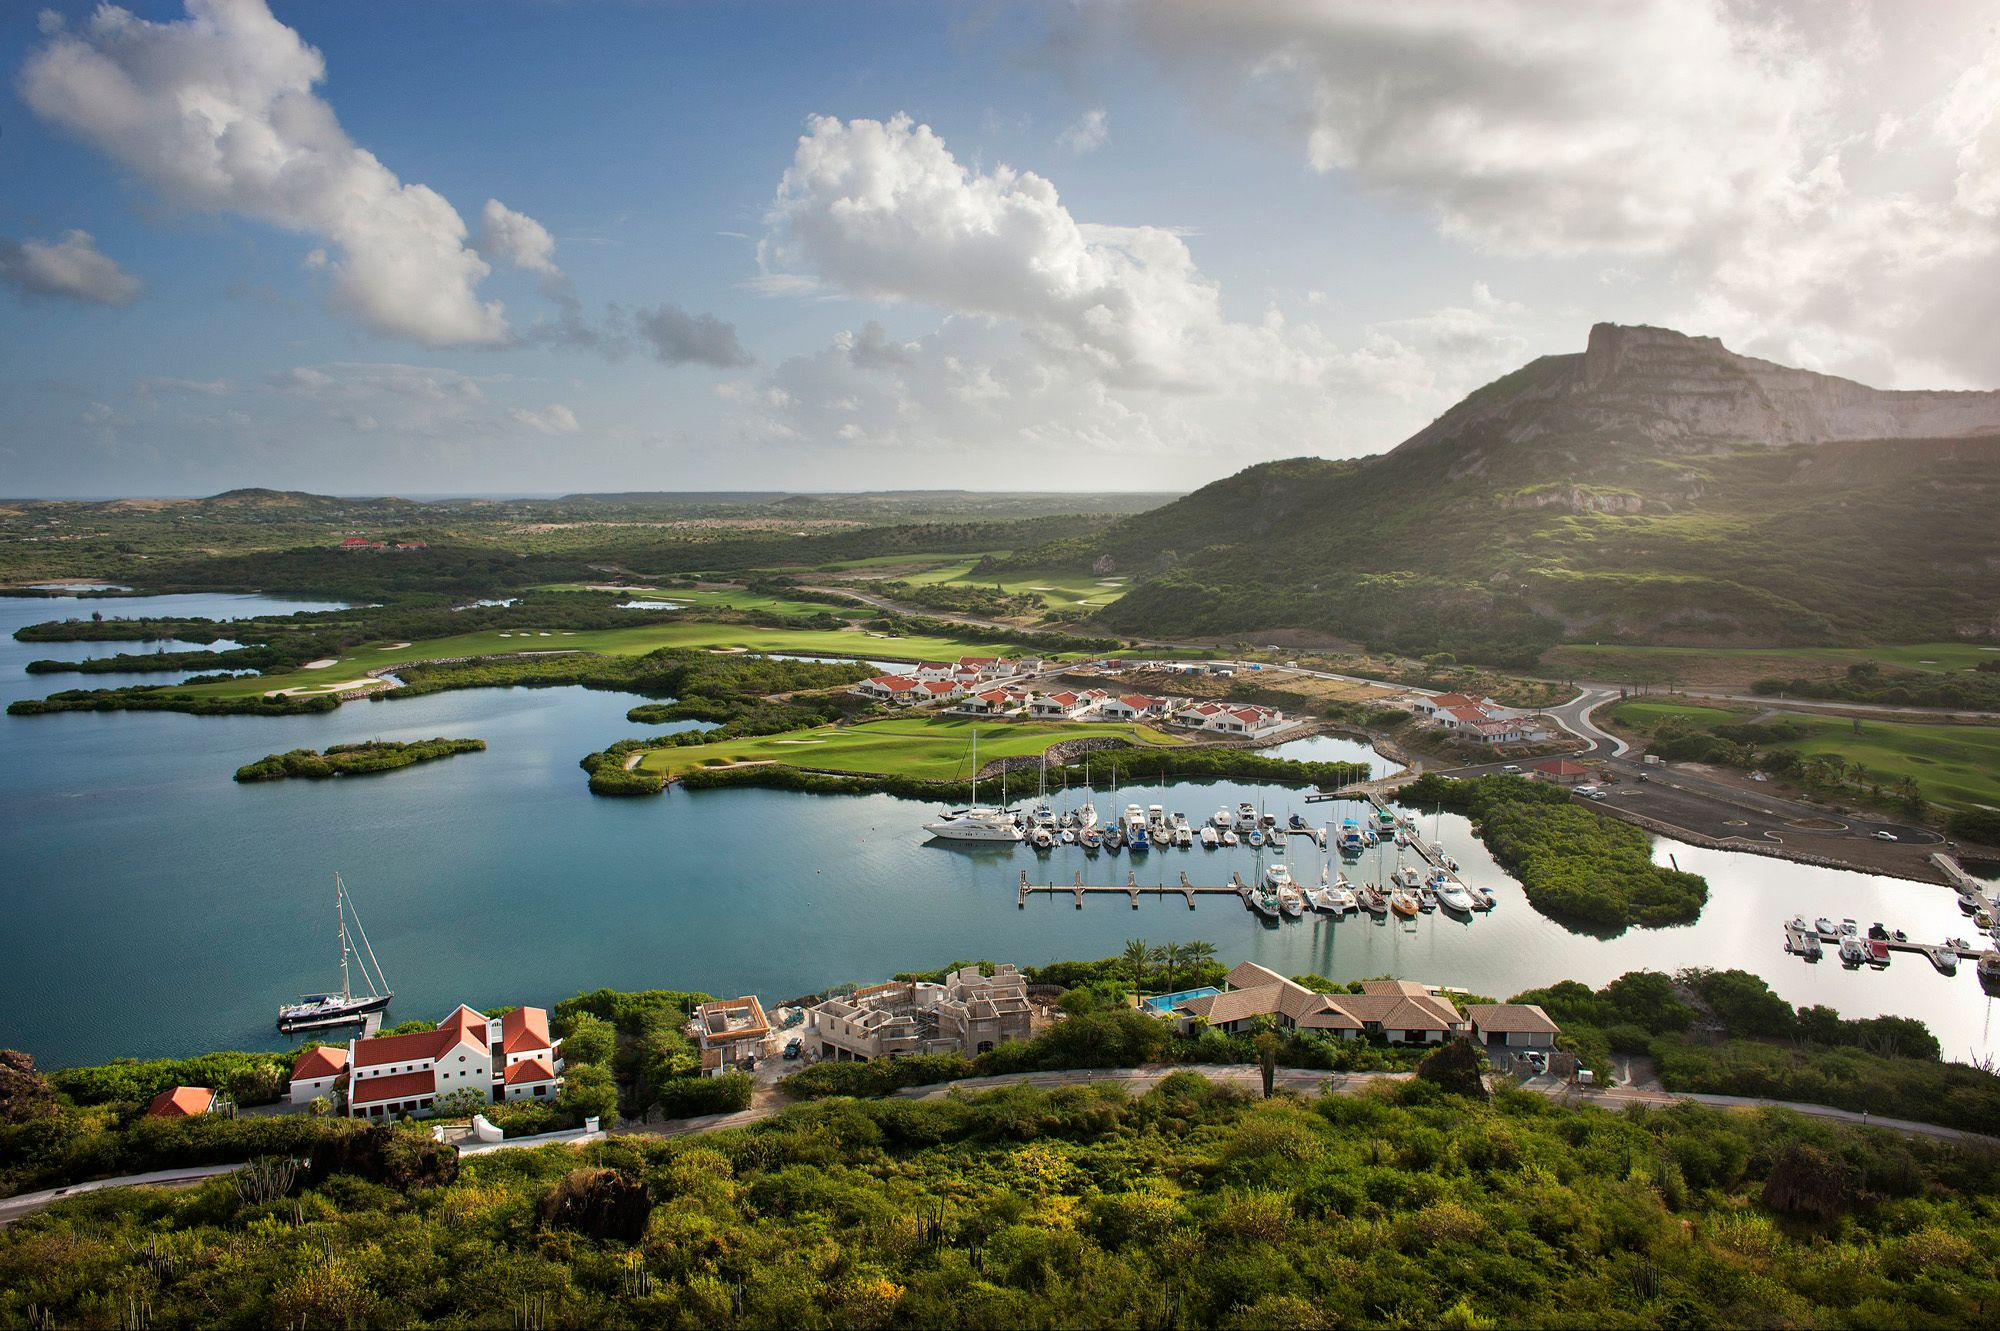 Sandals-Curacao-Old-Quarry